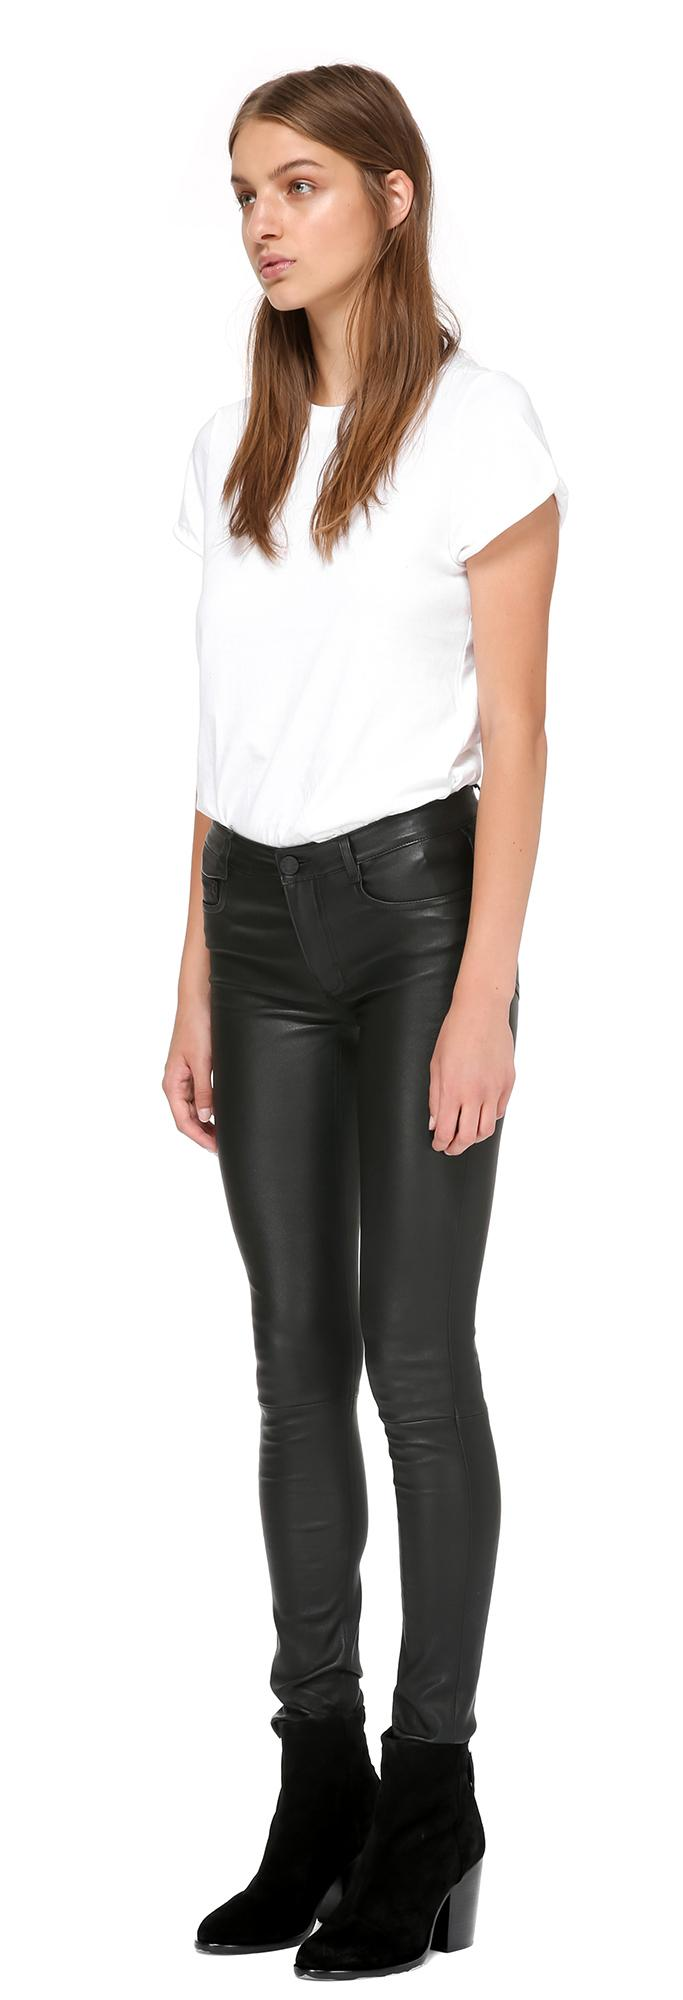 Xelement 'Classic' Men's Black Loose Fit Leather Pants Brand Name Pants by Xelement. ON SALE for a very Limited Time!! Men's fully lined up to the knee five pocket LOOSE FIT black leather jeans.